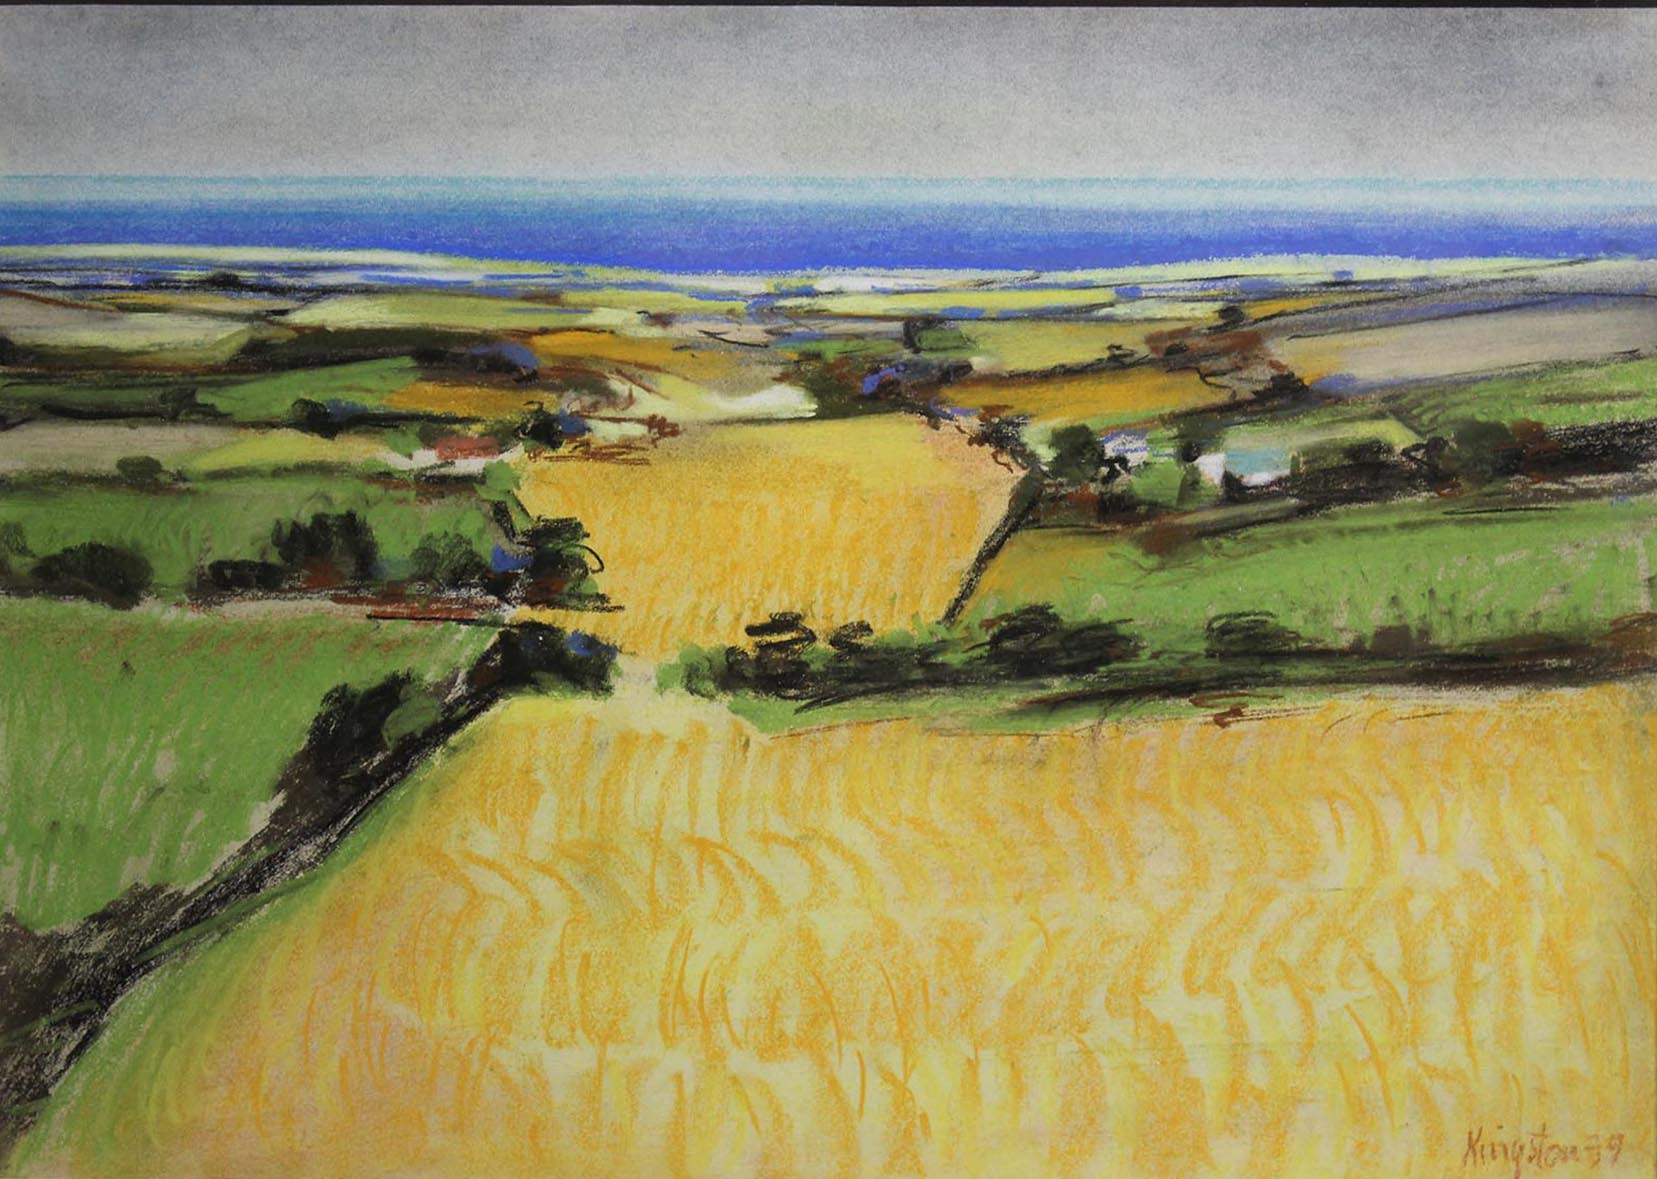 "Lot 52 - Richard Kingston GOLDEN FIELDS Pastel, 12"" x 16 1/2"" (30.5 x 42 cm), signed and dated 1979"